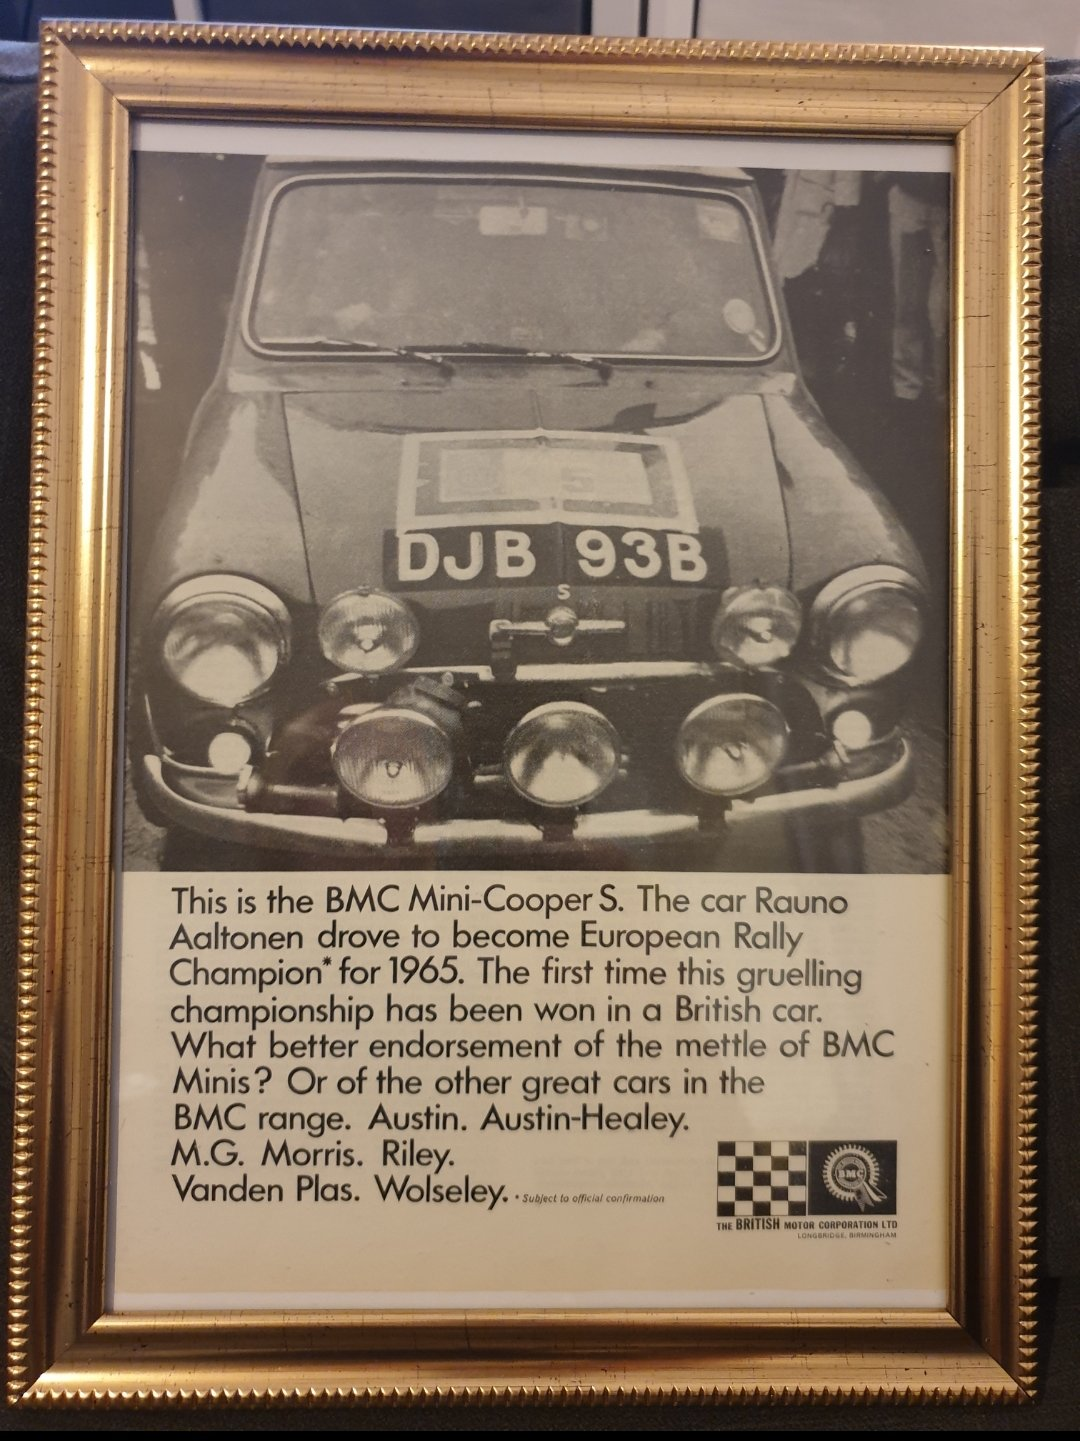 Original 1966 Mini Cooper S Framed Advert  For Sale (picture 1 of 2)